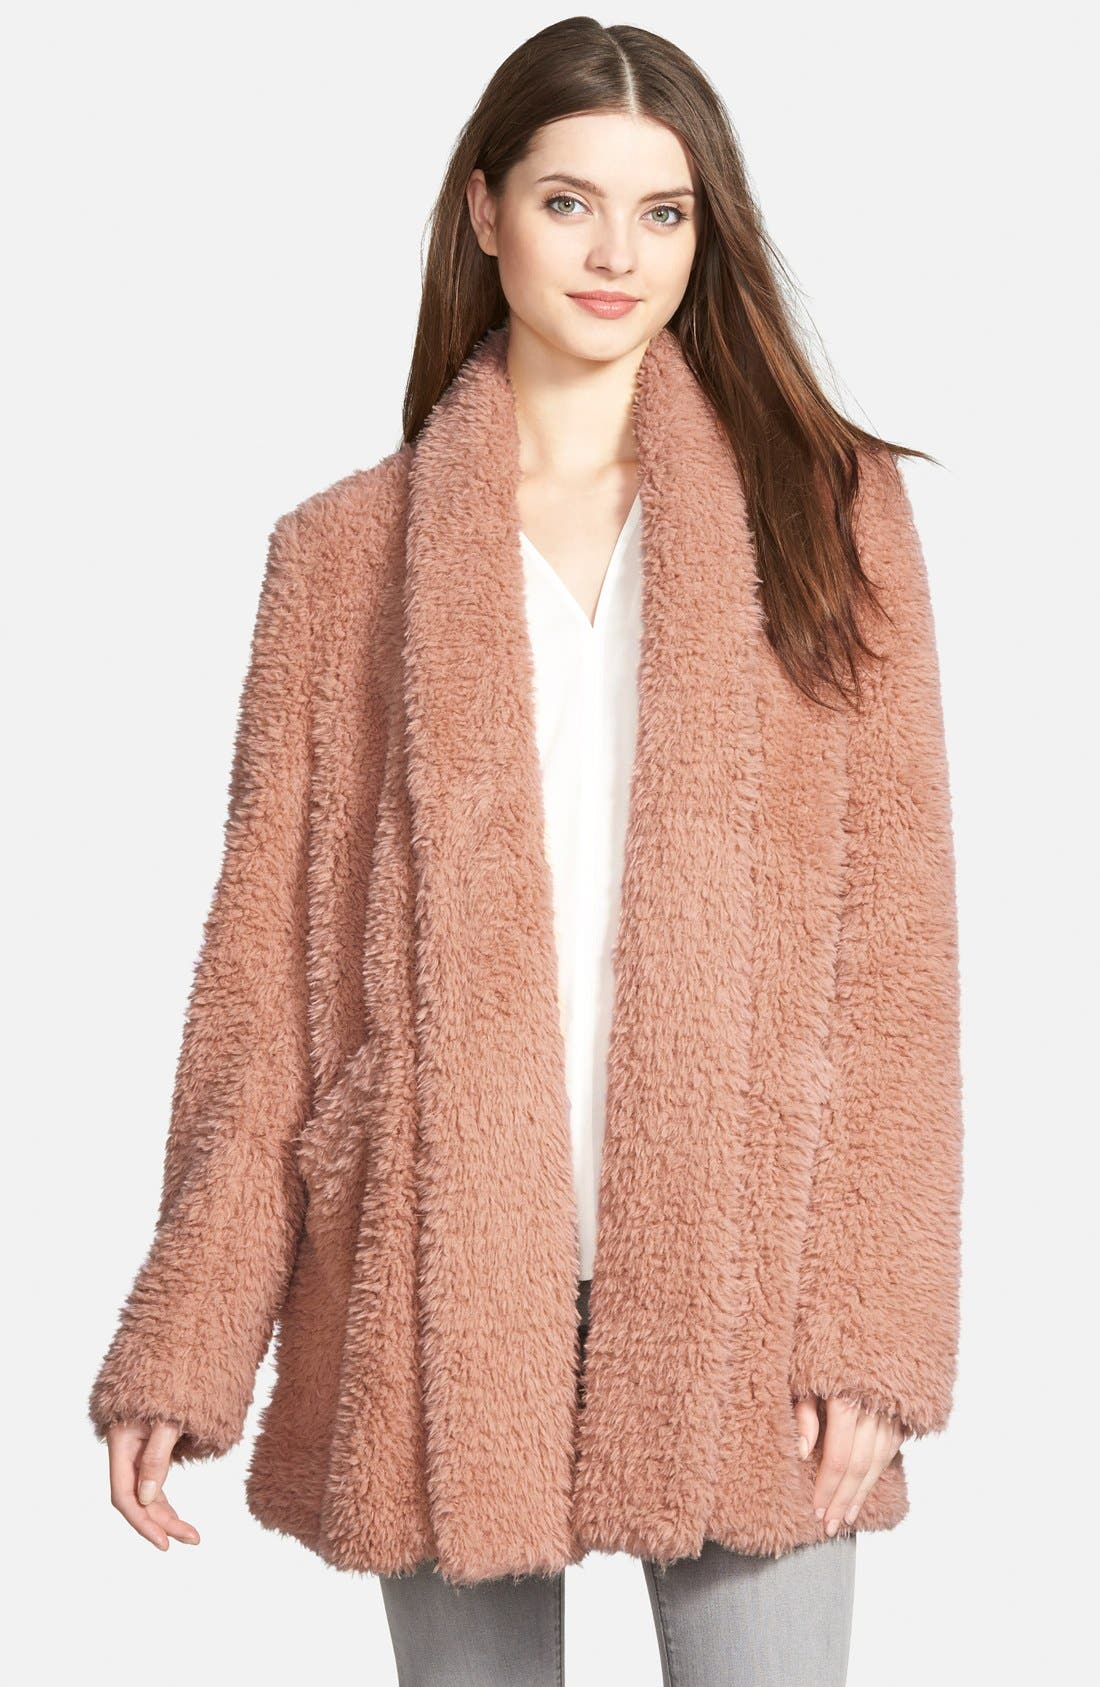 Alternate Image 1 Selected - Kenneth Cole New York 'Teddy Bear' Faux Fur Clutch Coat